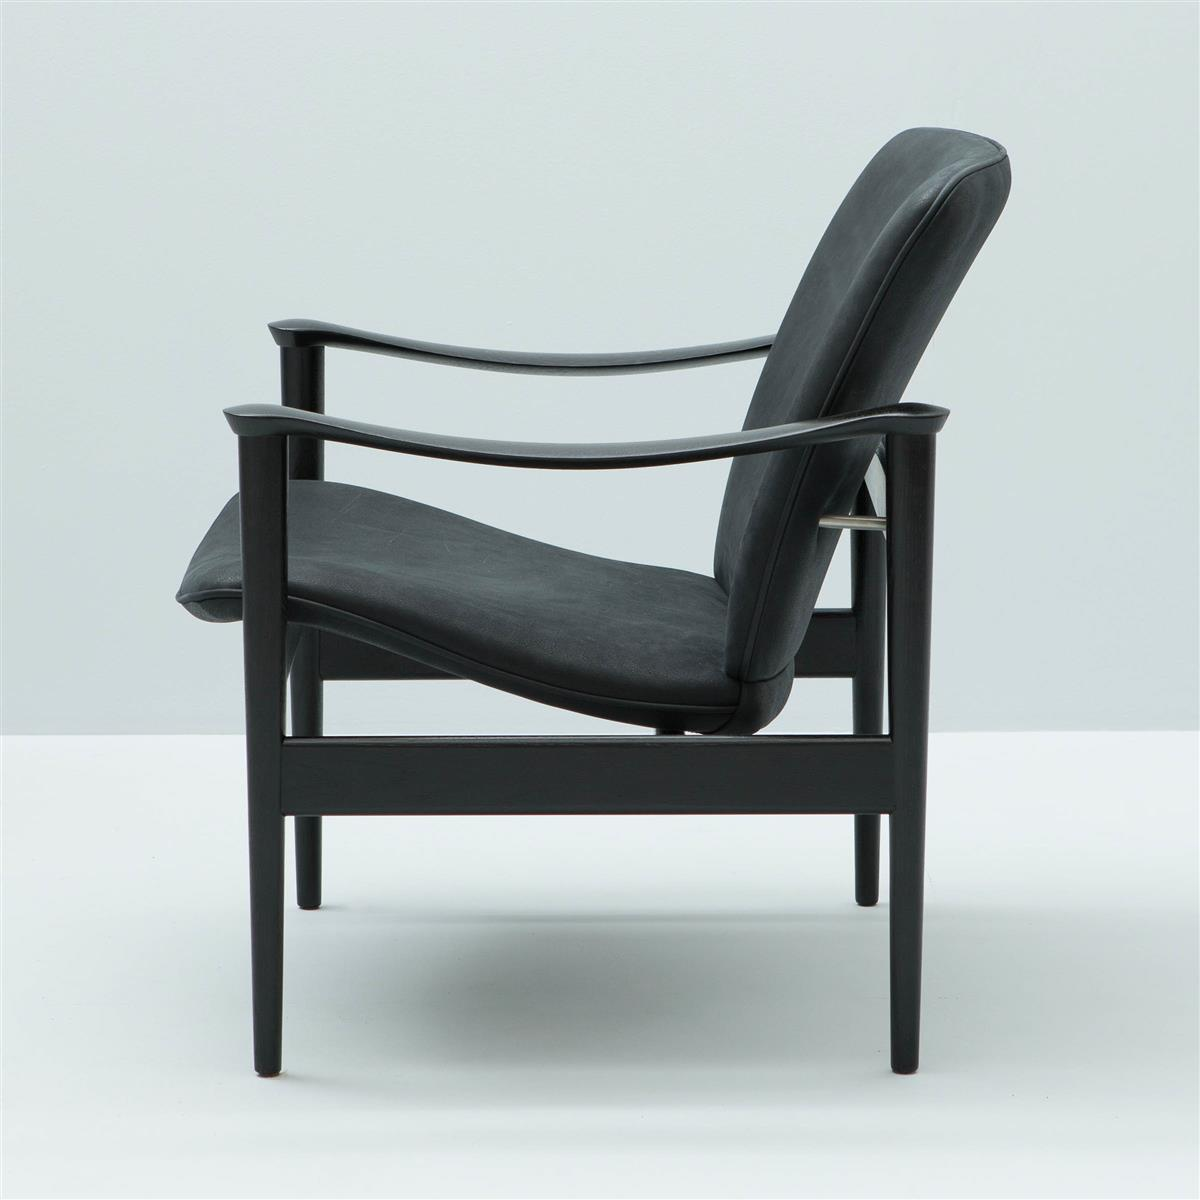 Modell 711 Lounge Chair. Eik sortbeiset. Saddle 08 Raven lær.